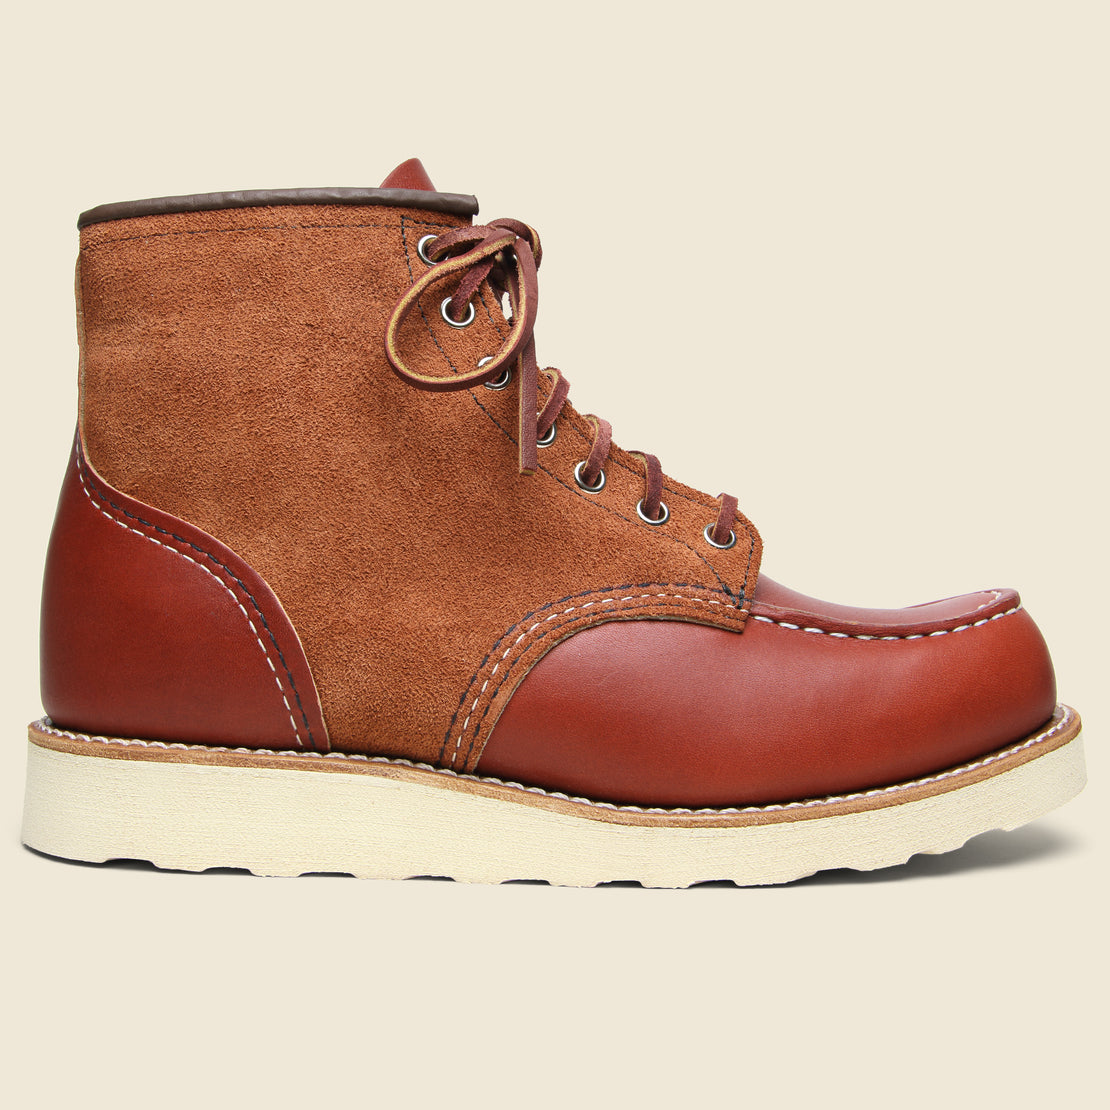 "Red Wing 6"" Moc Toe No. 8819 - Oro Russet Portage"